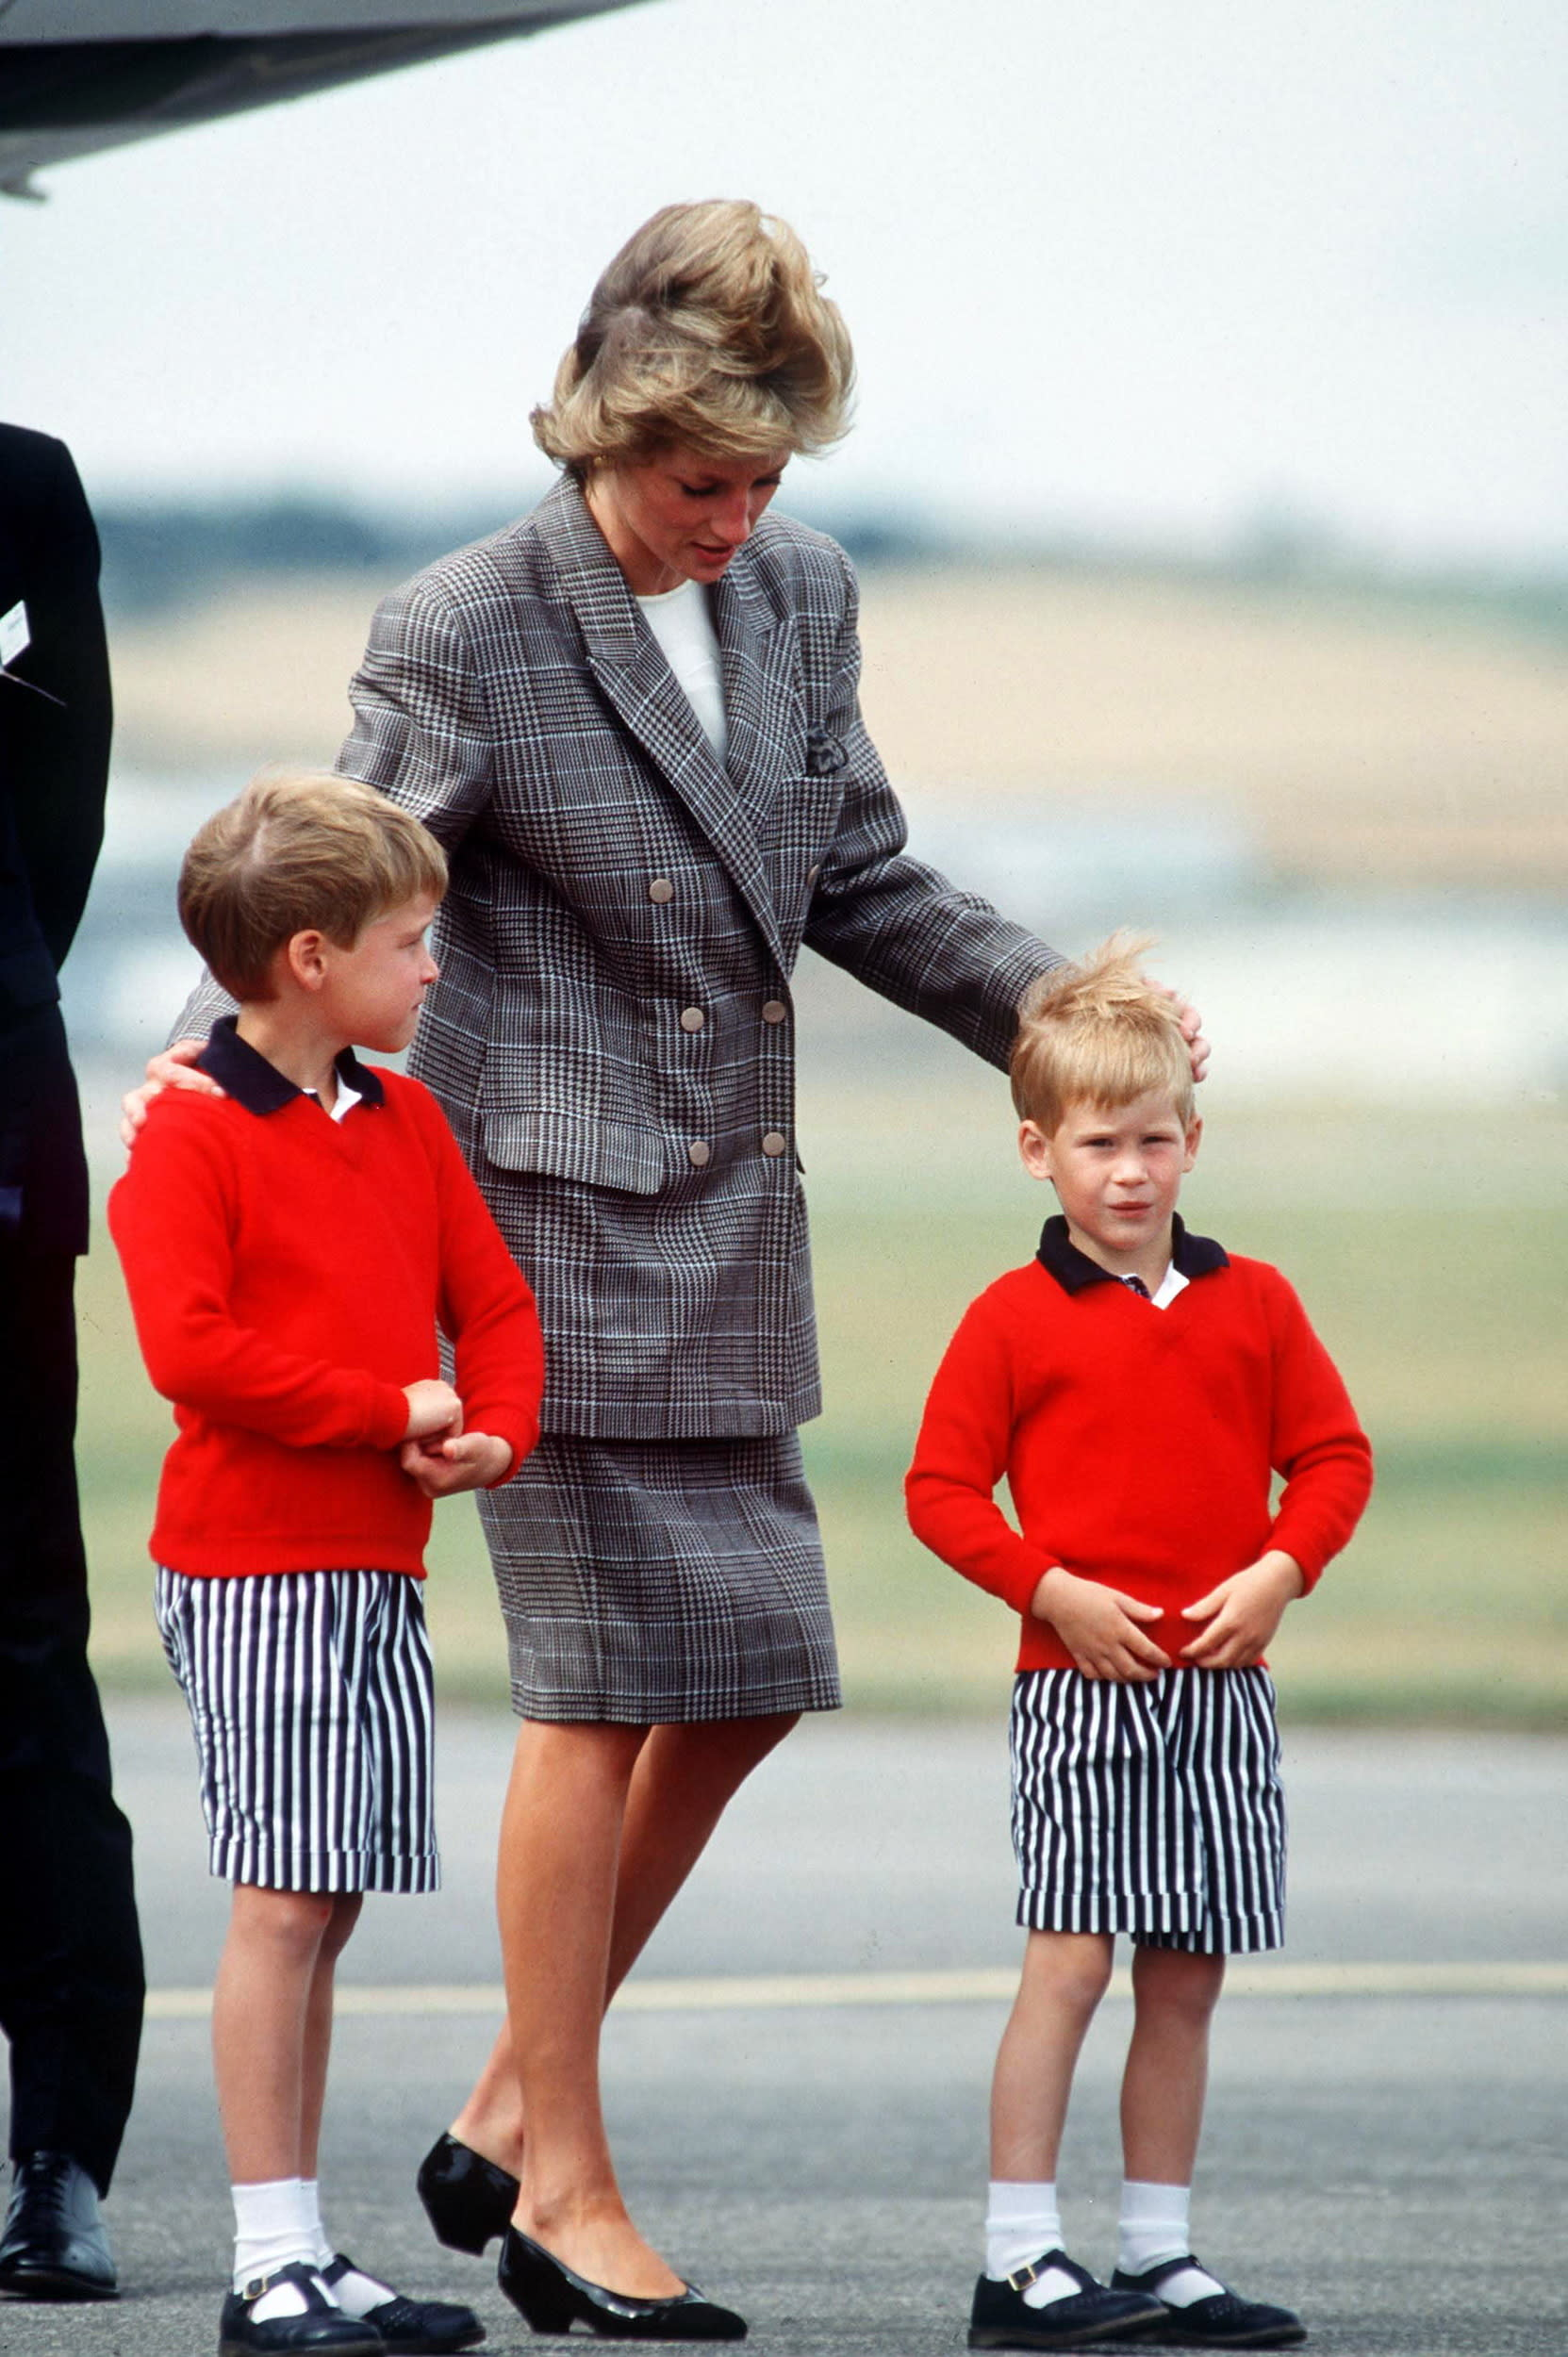 ABERDEEN, SCOTLAND - AUGUST 14:  Princess Diana With Her Sons Prince William And Prince Harry At Aberdeen Airport.  (Photo by Tim Graham/Getty Images)